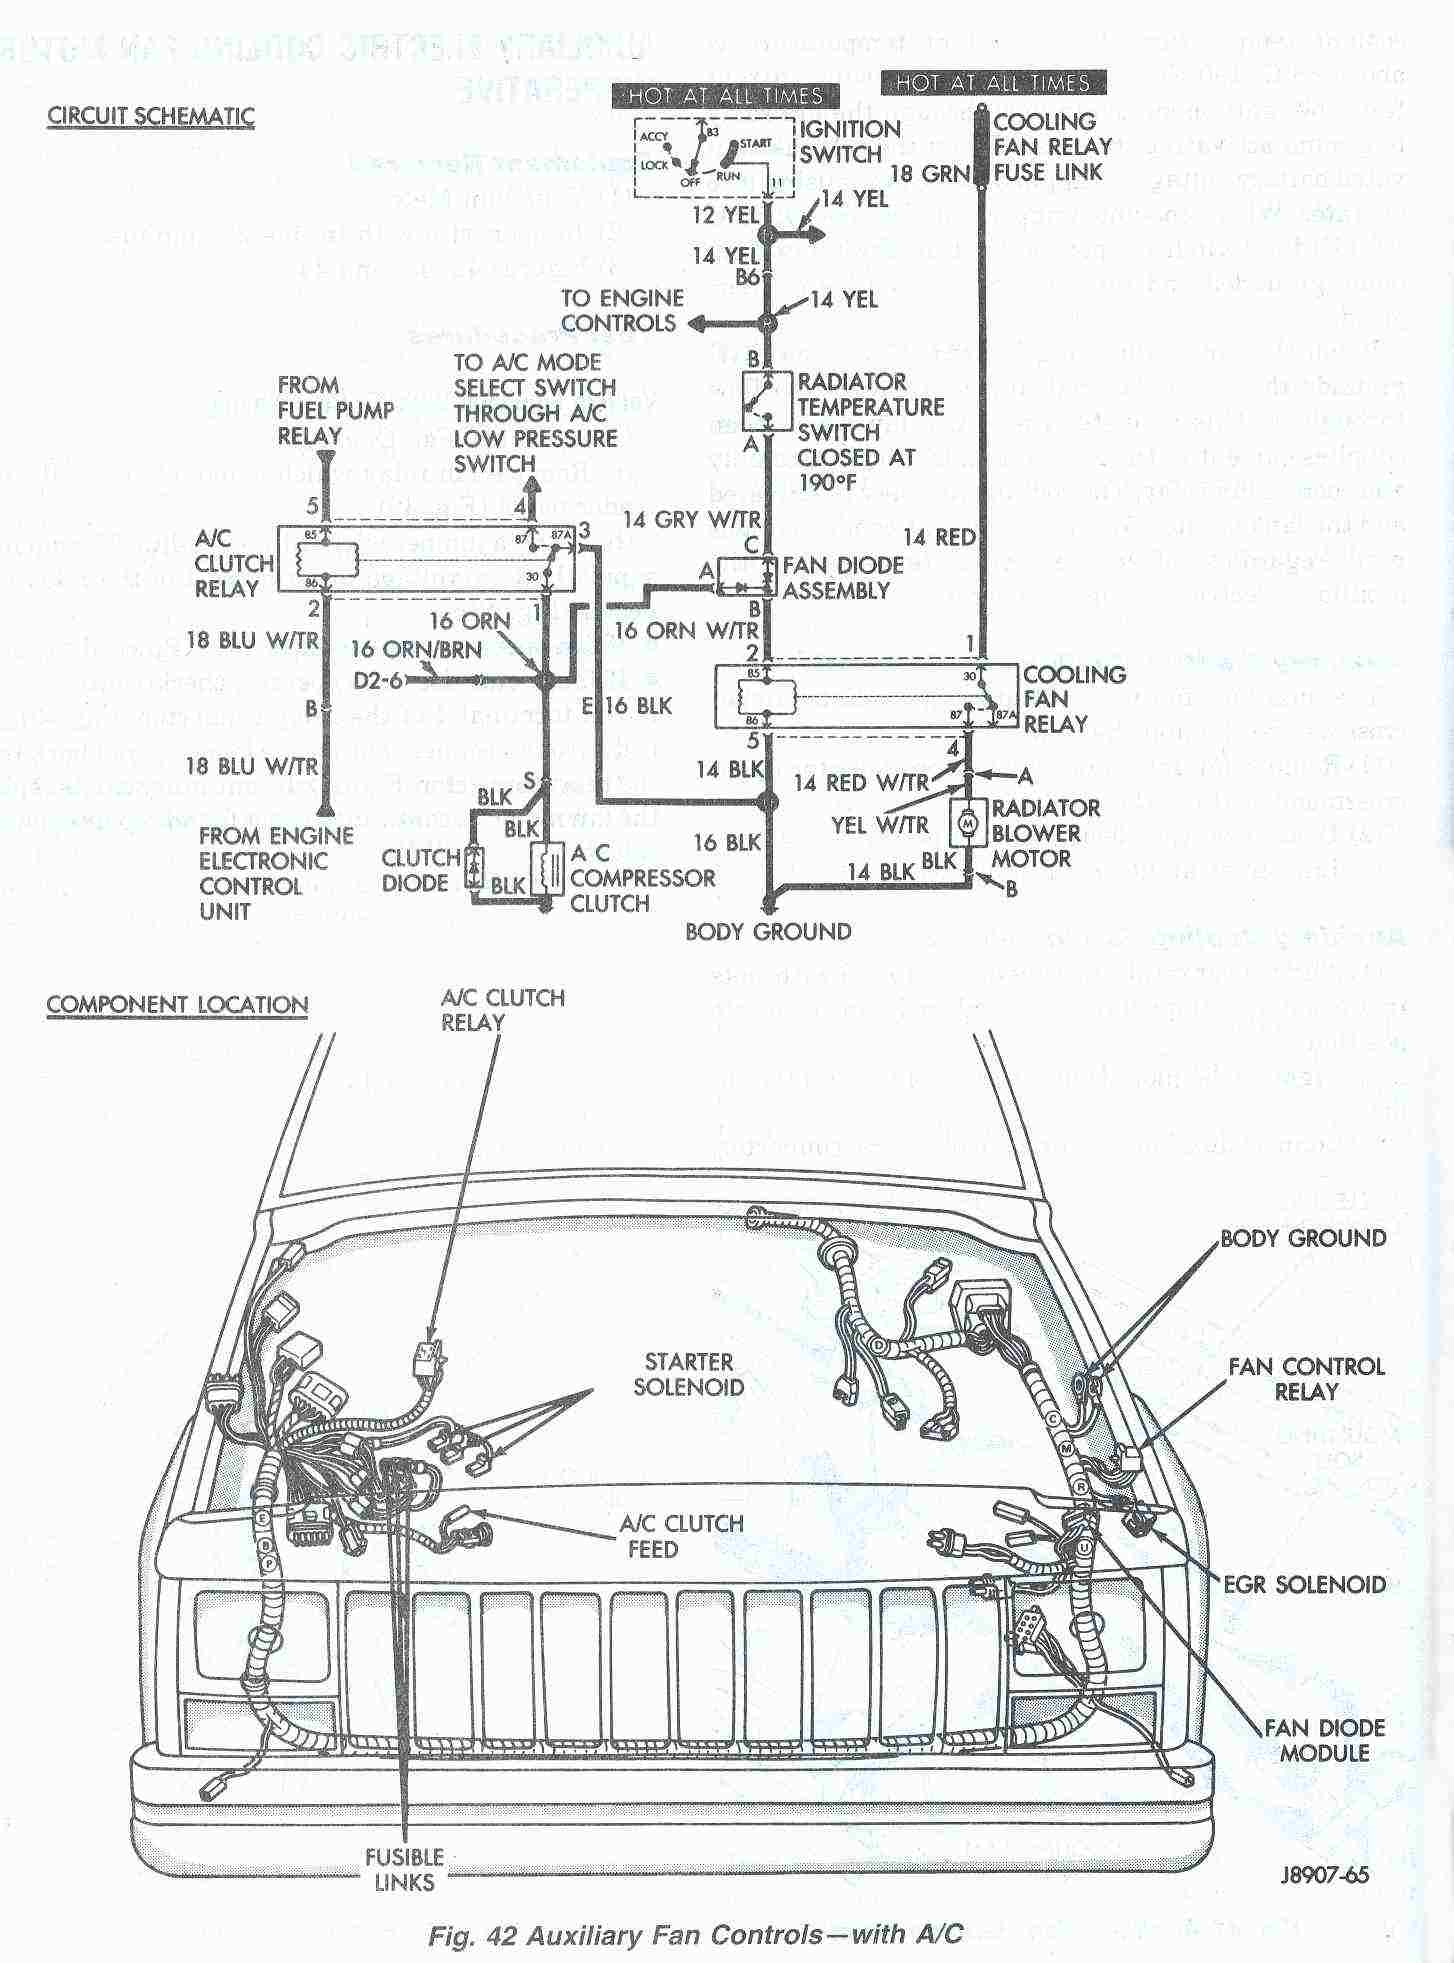 Auxiliary_Fan_Schematic_Fig_42 jeep cherokee cooling system electric cooling fan 96 Jeep Cherokee Fuse Diagram at eliteediting.co